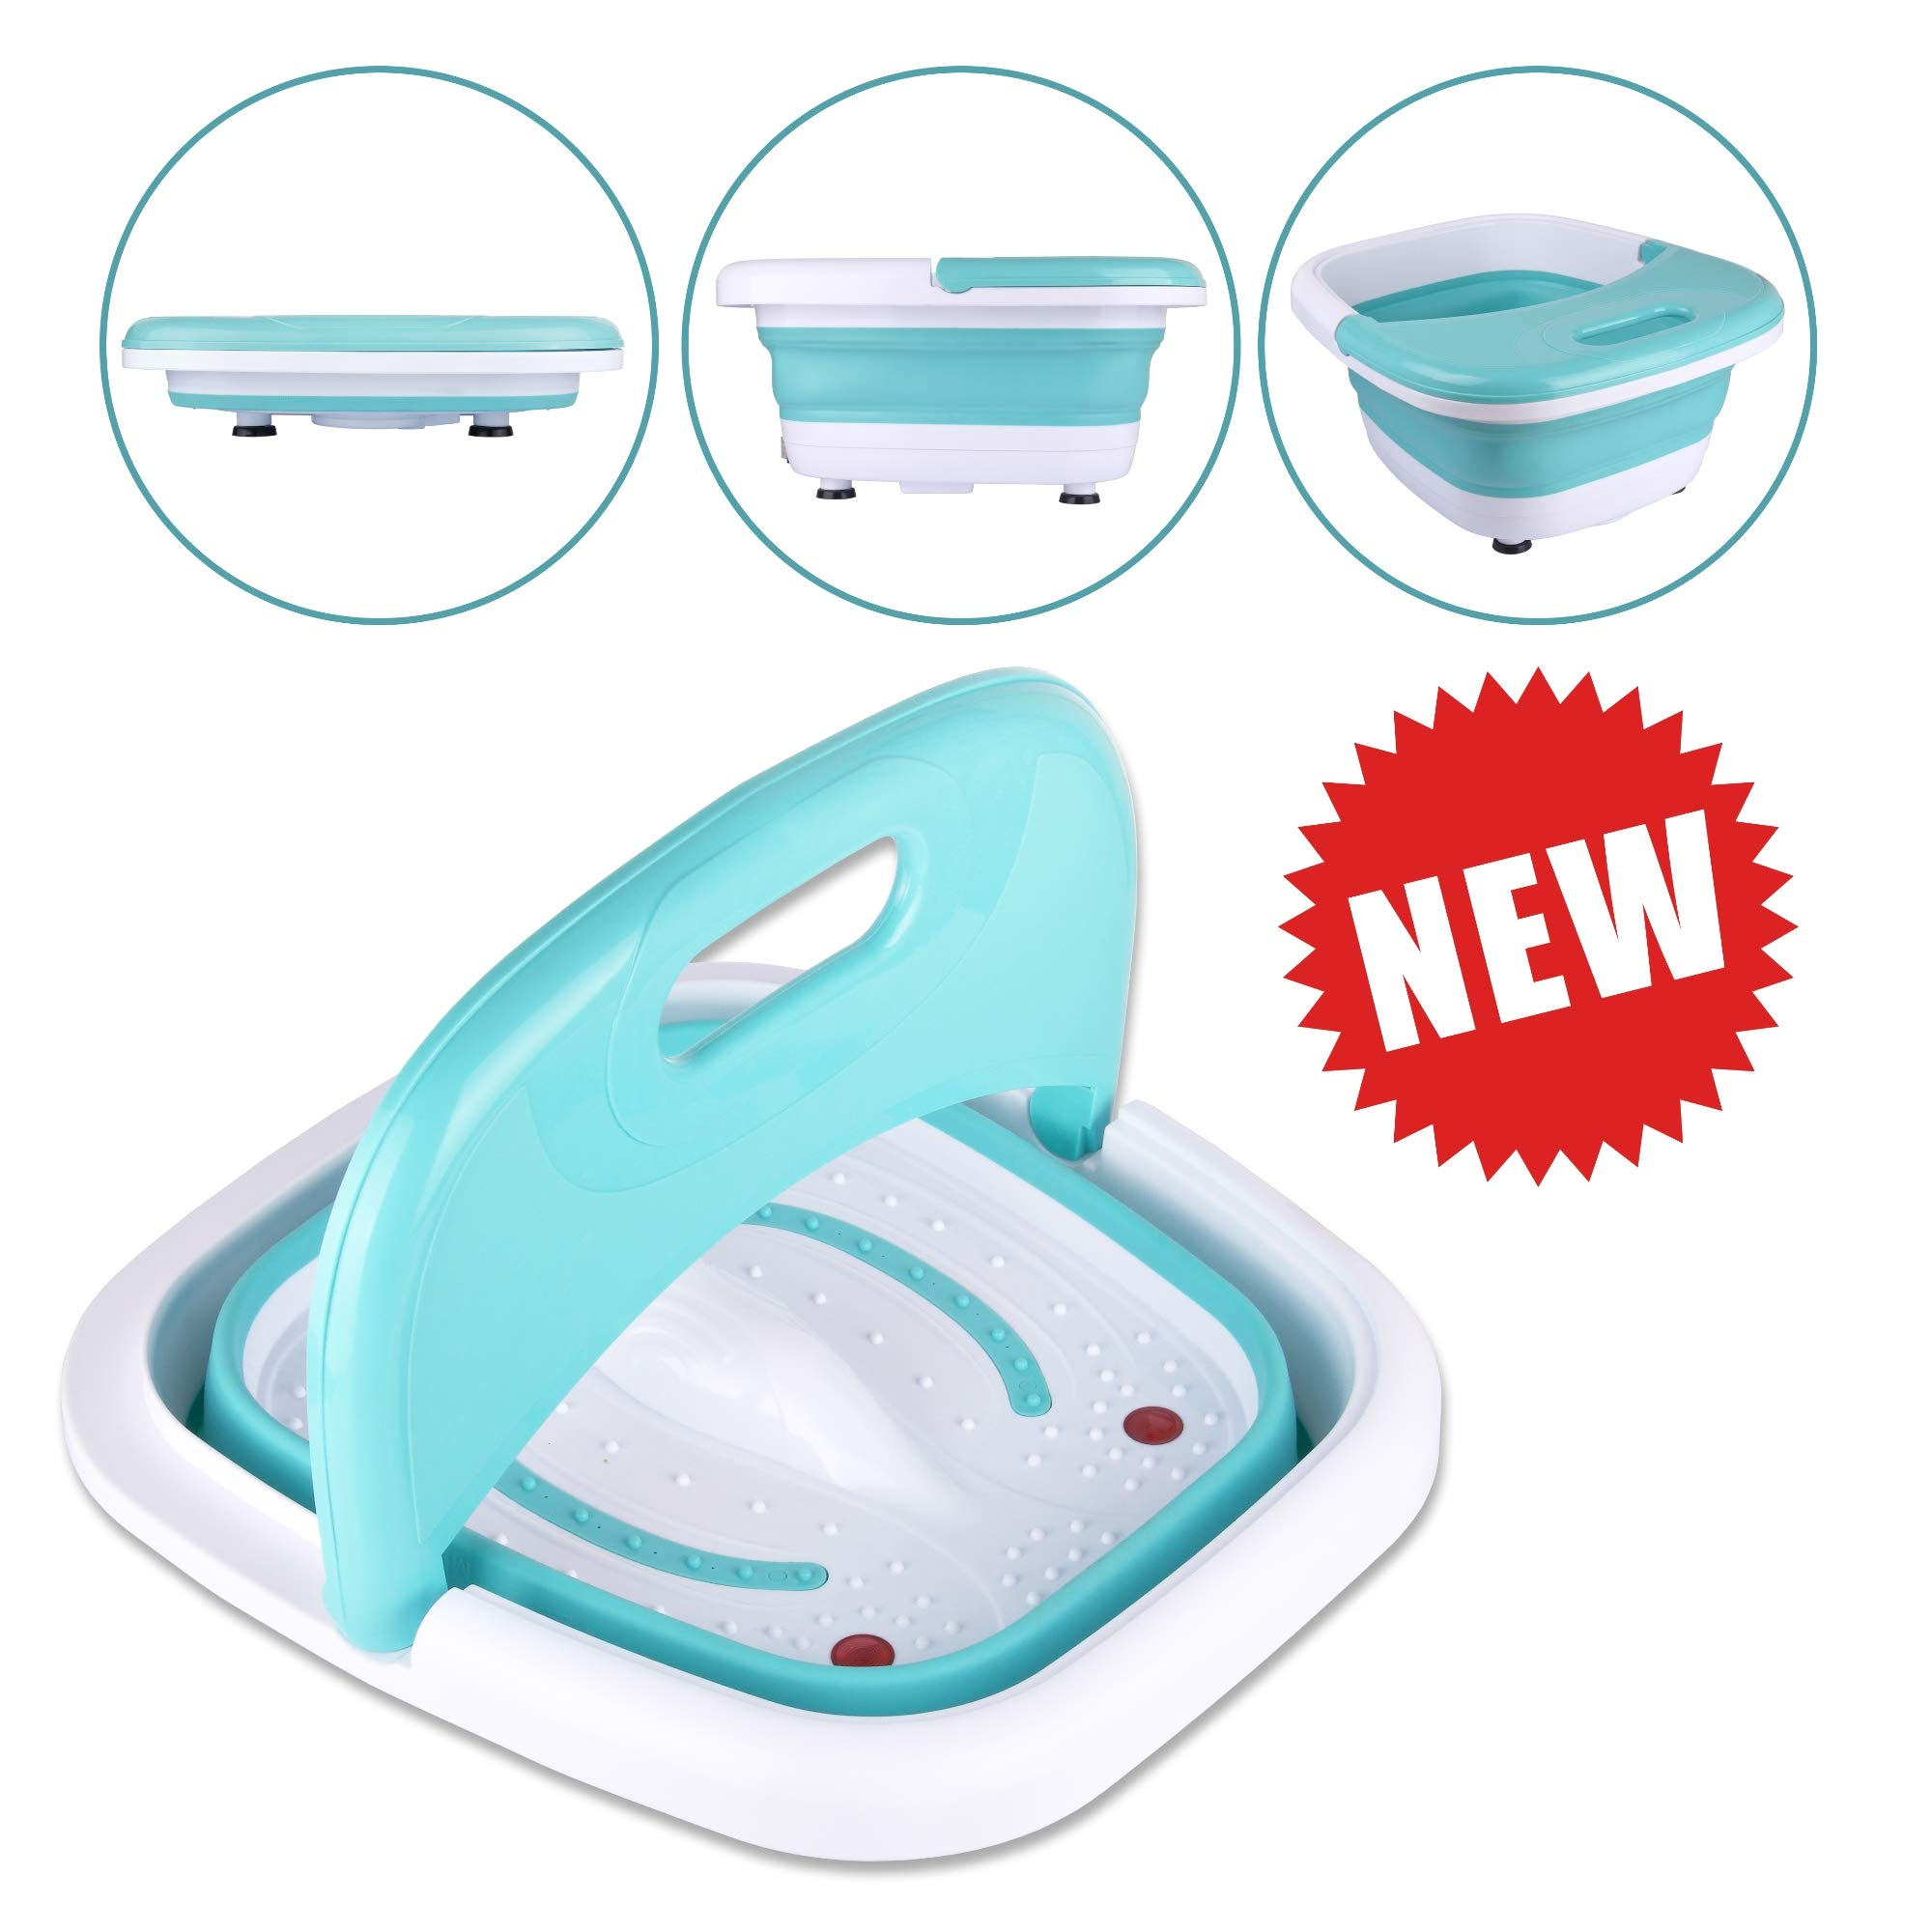 Heated Foot SPA Bath Tub - Collapsible Pedicure Jacuzzi Massager with Electric Heating | Bubble Wave | Red Light Therapy - 3 in 1 Soak Footbath Set for Feet Relaxation and Stress Relief